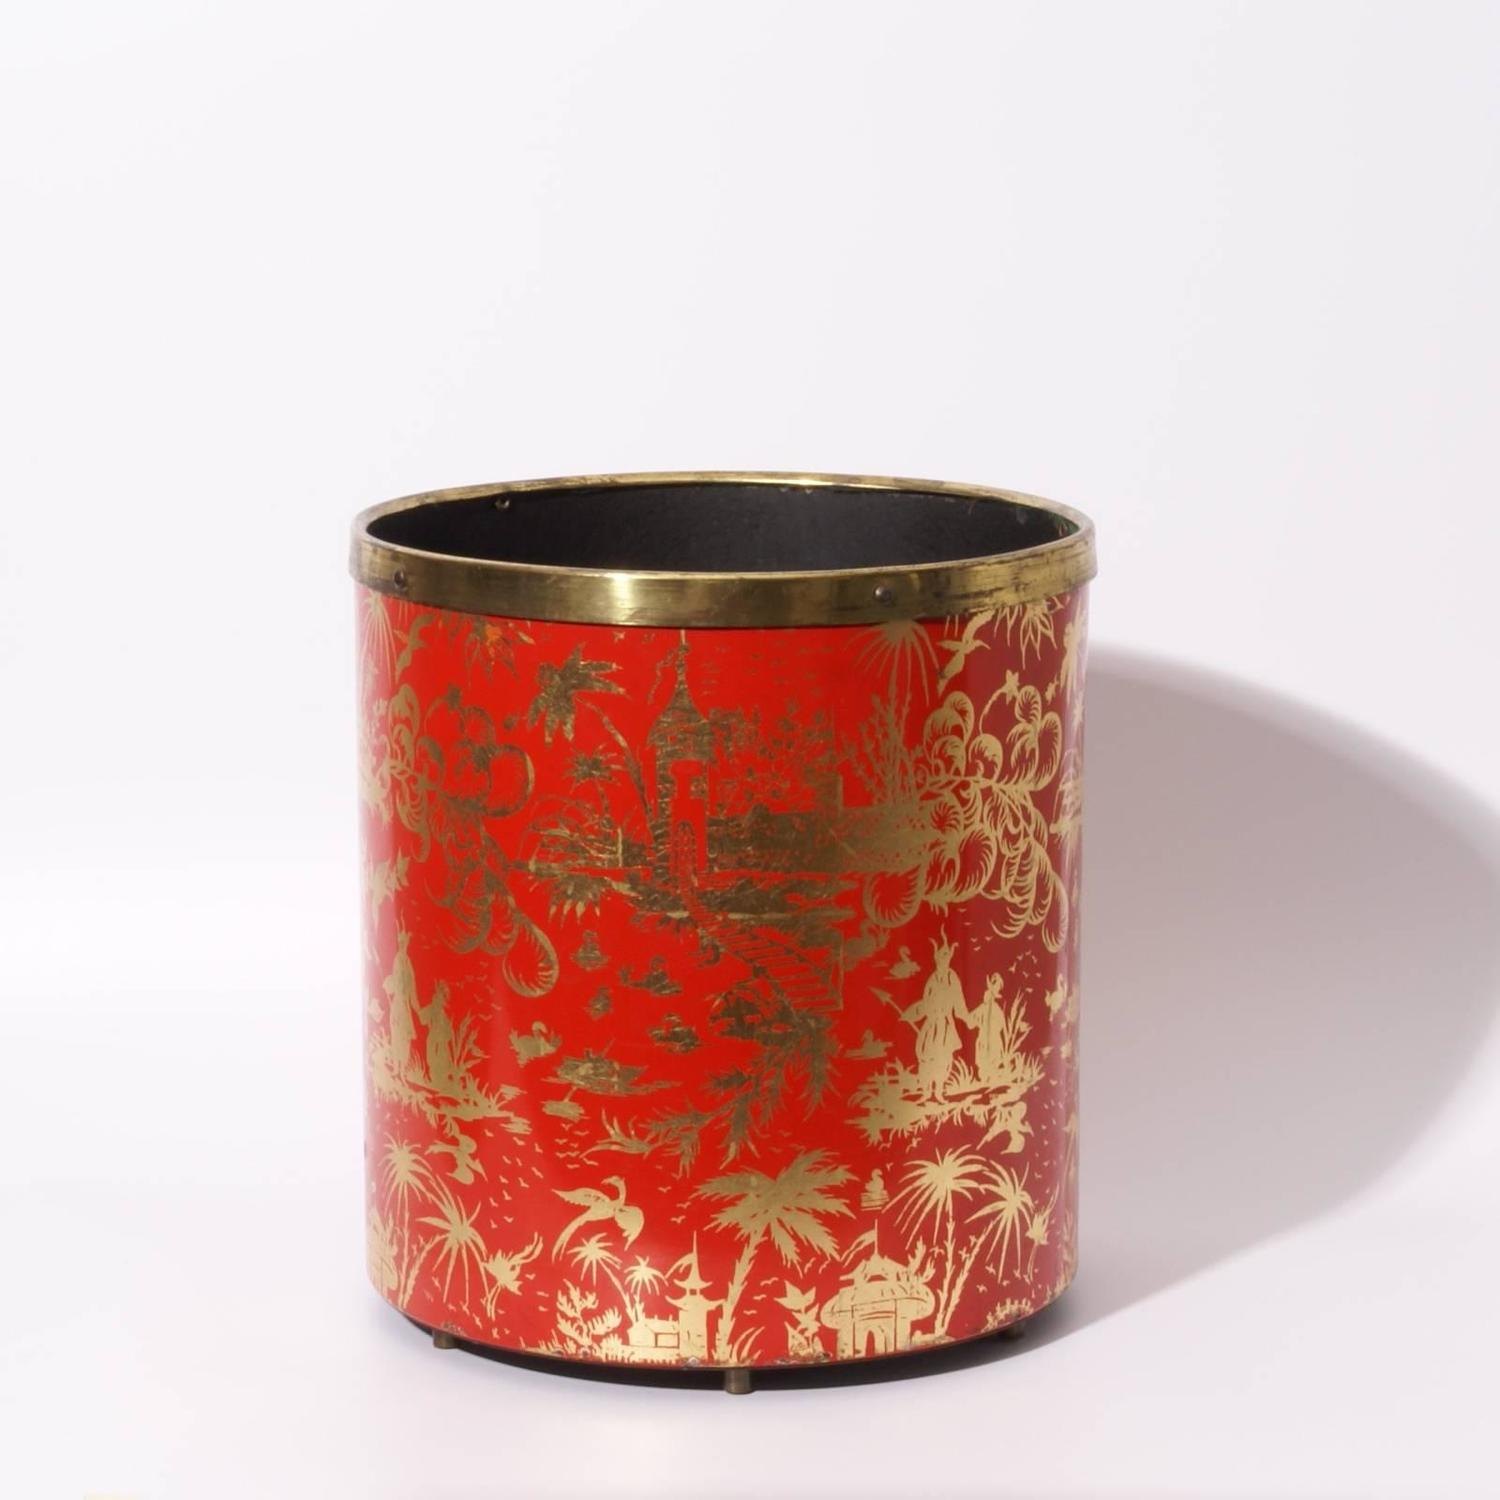 Decorative Metal Waste Baskets Piero Fornasetti 1950s Waste Basket At 1stdibs